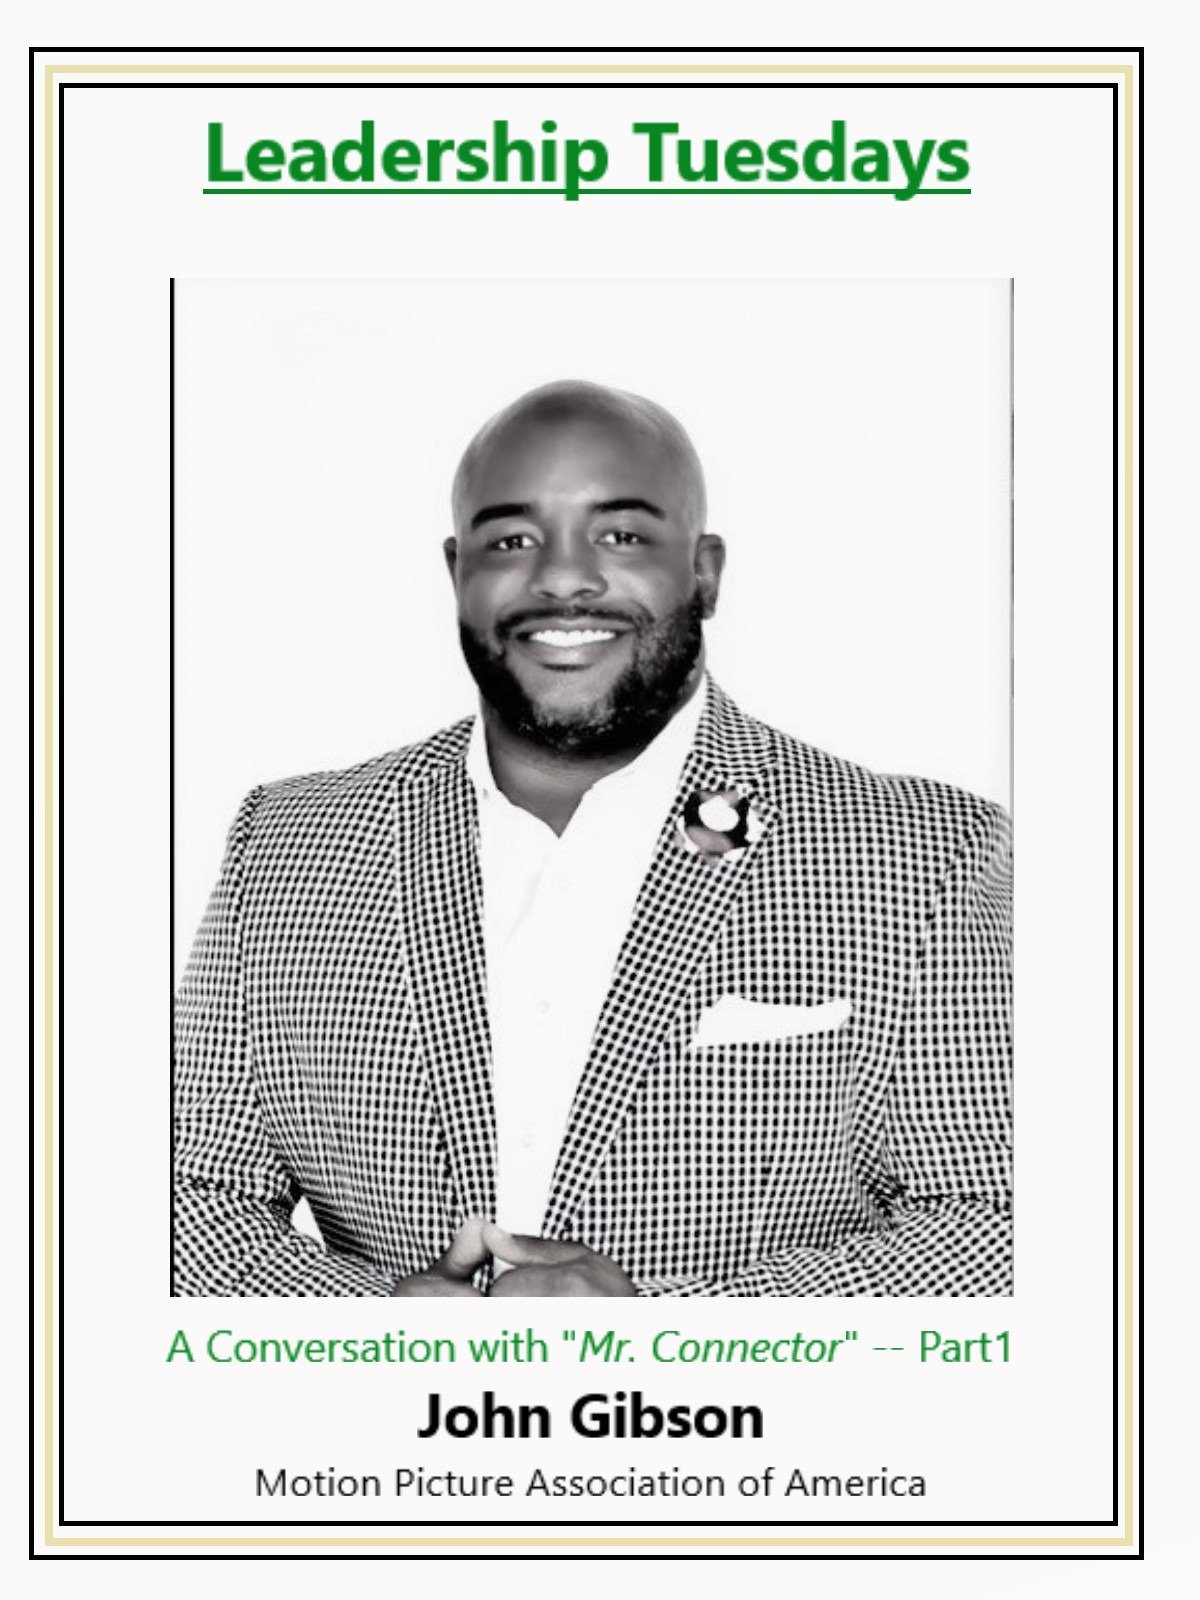 """Leadership Tuesdays: A Conversation With """"Mr. Connector"""" John Gibson -- Part 1"""